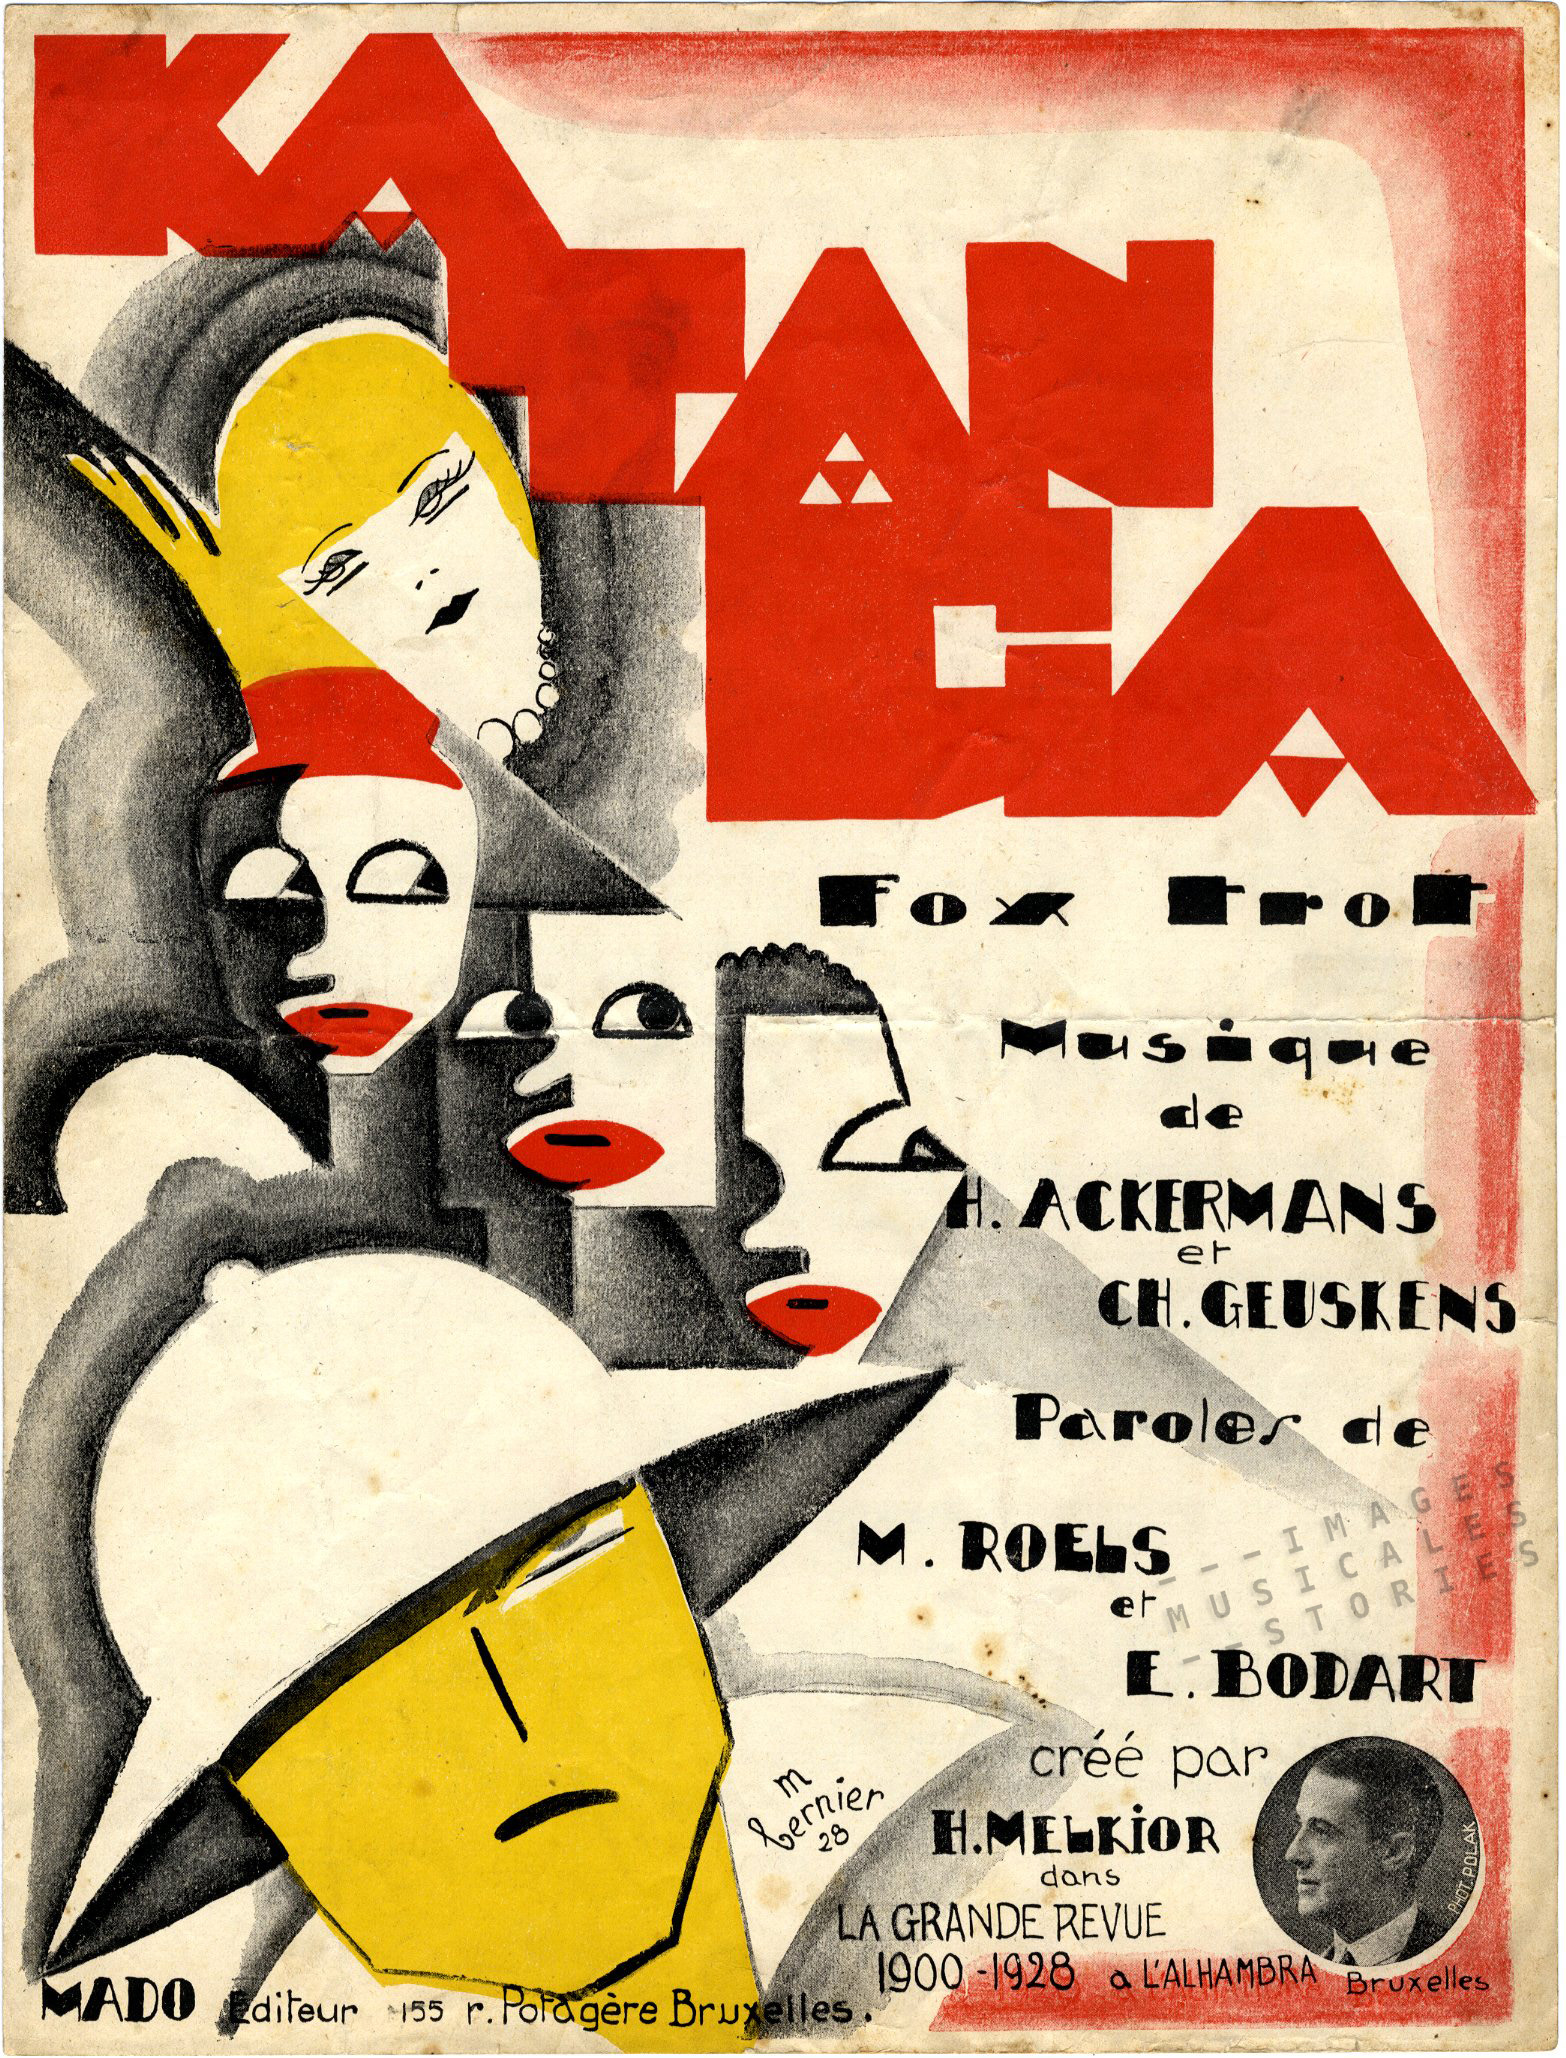 Sheet music (partition musicale) of 'Katanga', song by Hippolyte Ackermans & Charles Geuskens, lyrics by M. Roels, 1928, illustrated by Alfred Mariano Bernier.